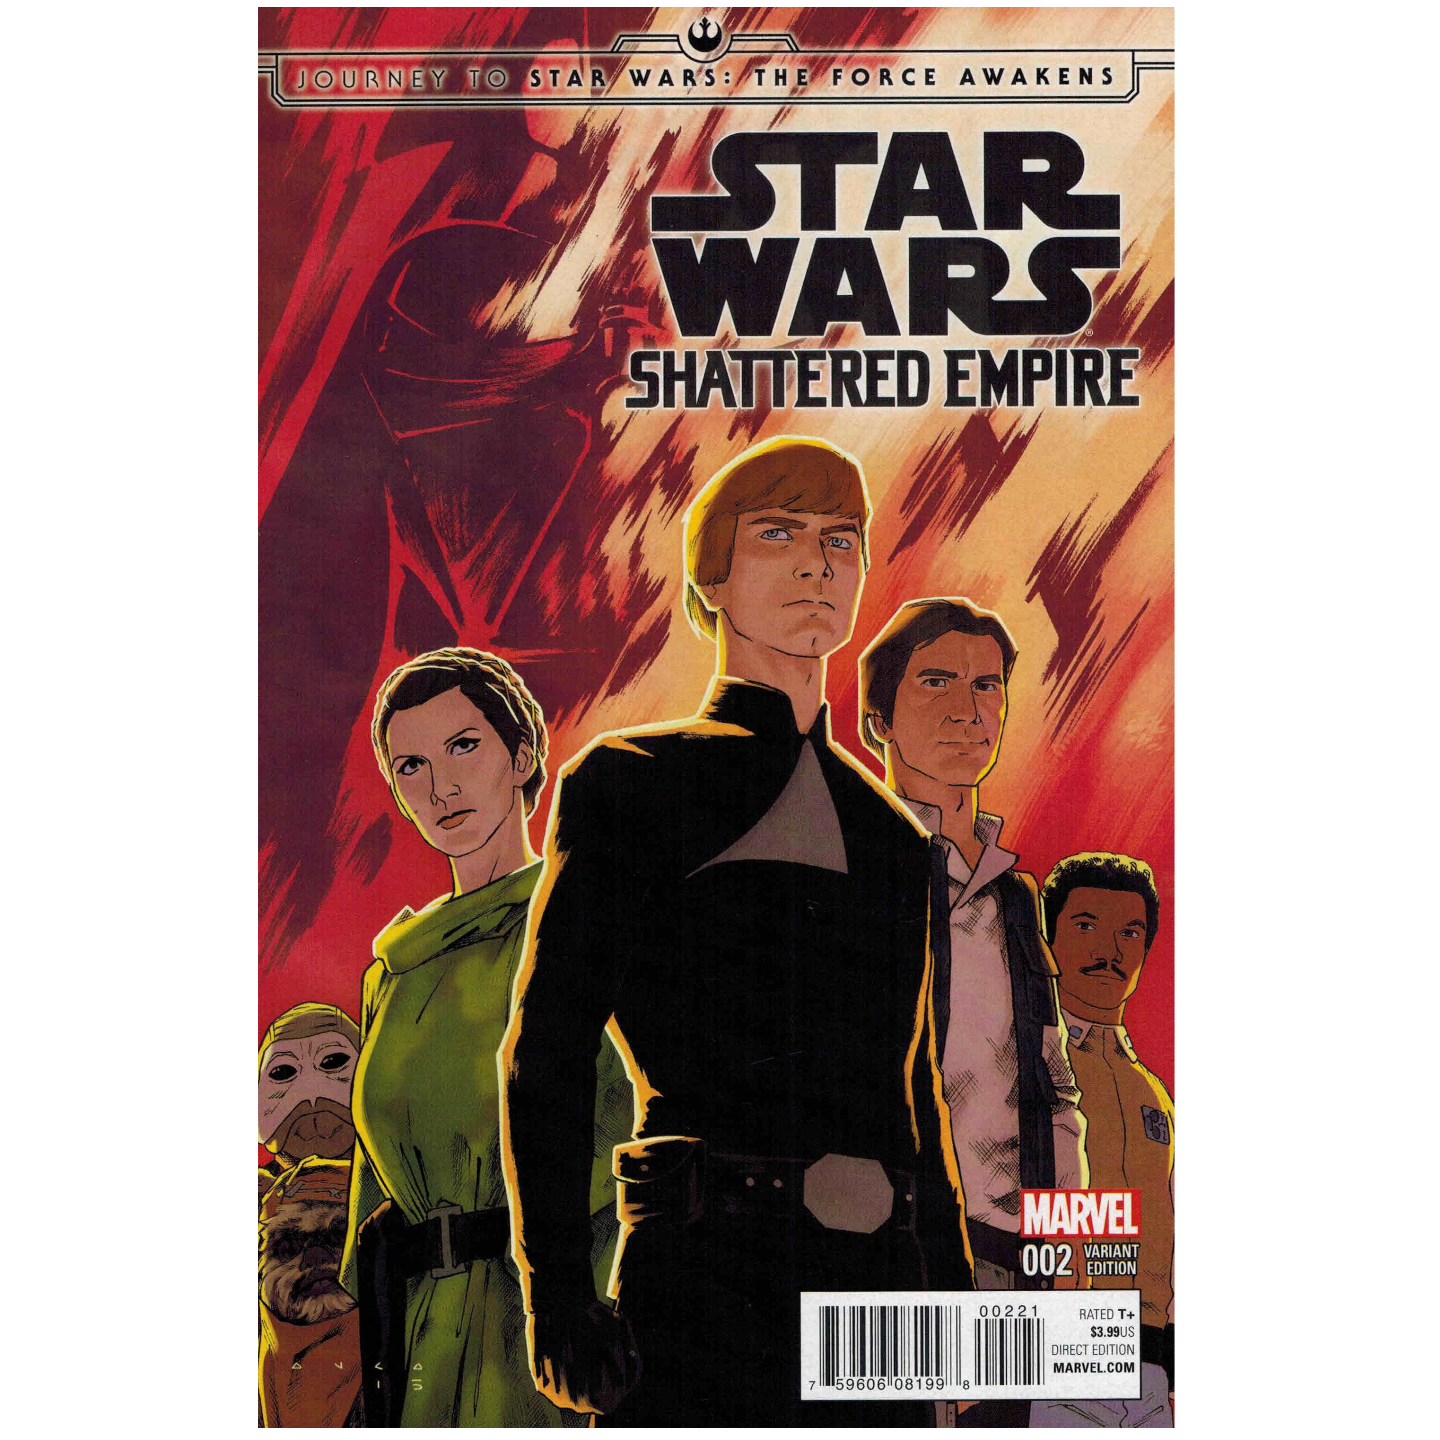 JOURNEY TO STAR WARS: THE FORCE AWAKENS - SHATTERED EMPIRE #2 ANKA VAR